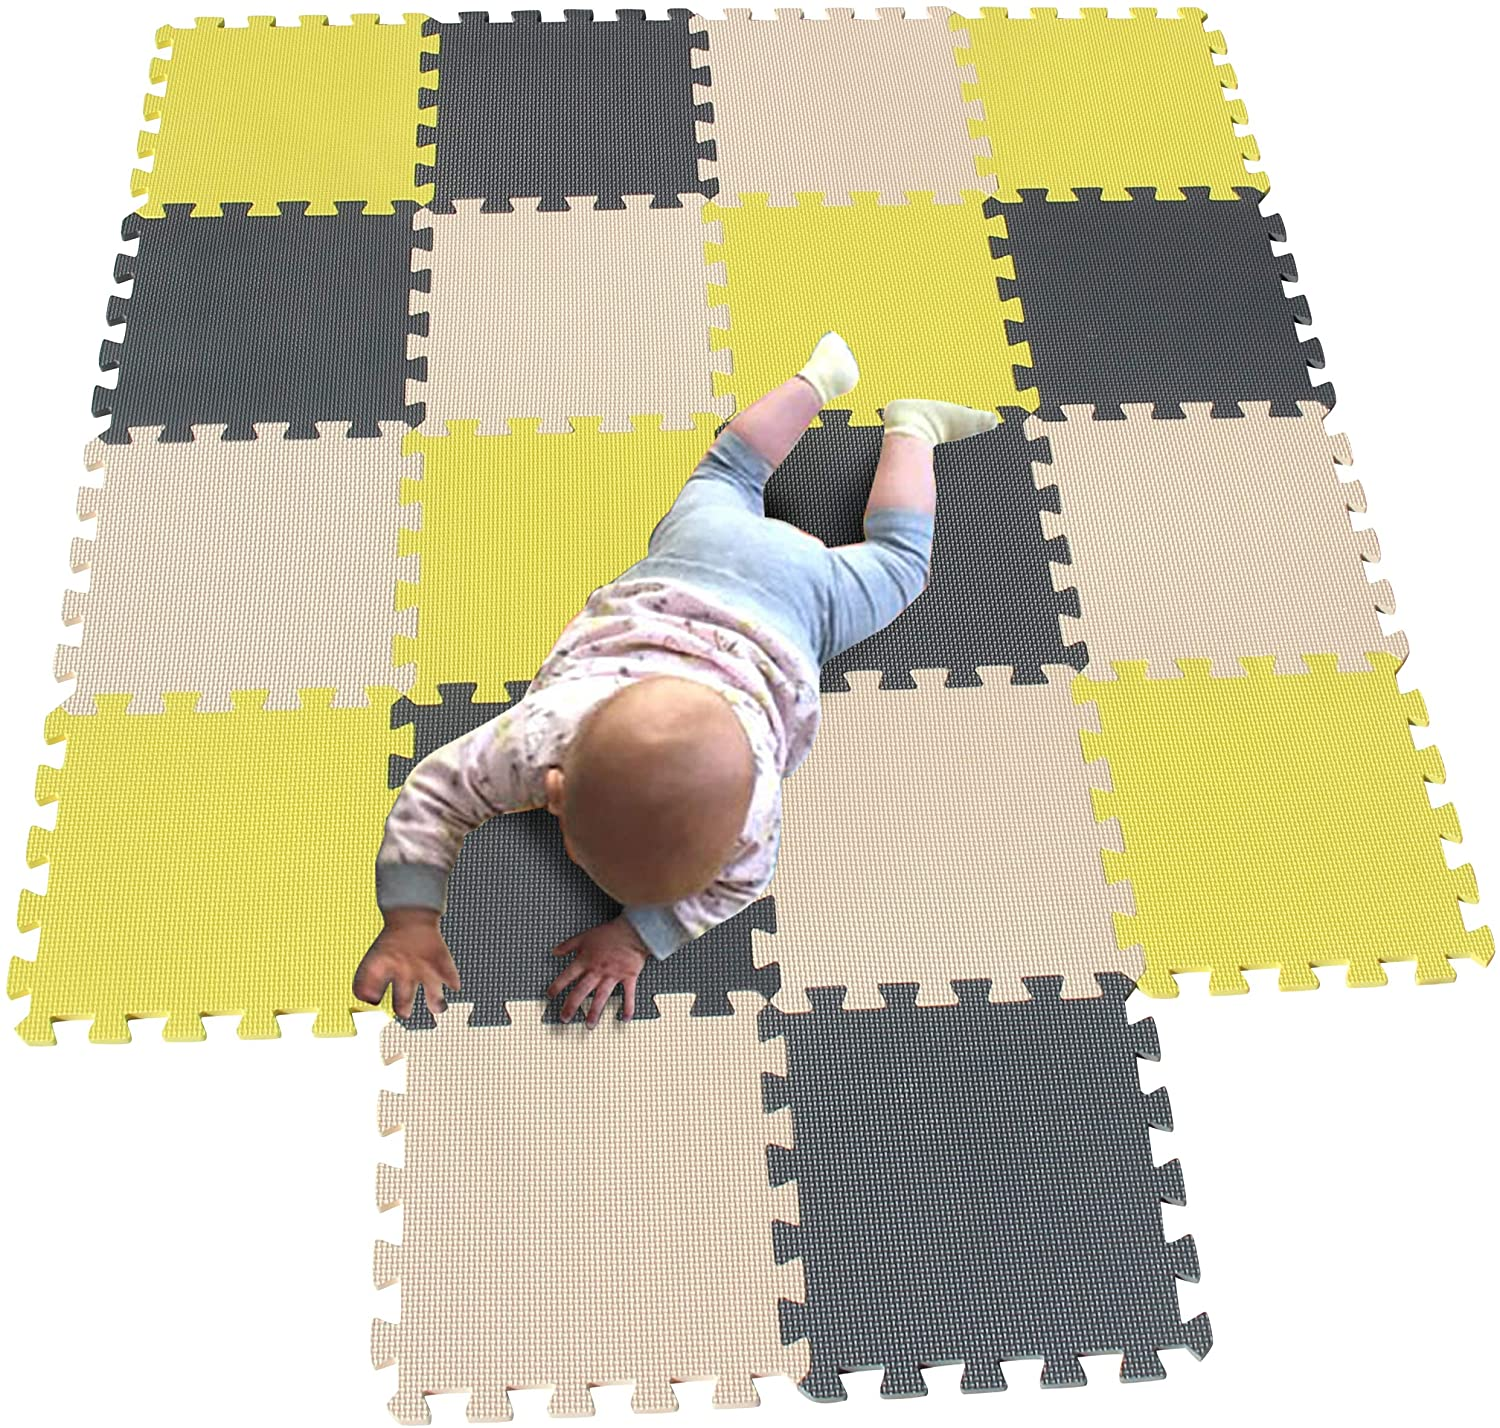 MQIAOHAM Children Puzzle mat Play mat Squares Play mat Tiles Baby mats for Floor Puzzle mat Soft Play mats Girl playmat Carpet Interlocking Foam Floor mats for Baby Yellow Beige Grey 105110112